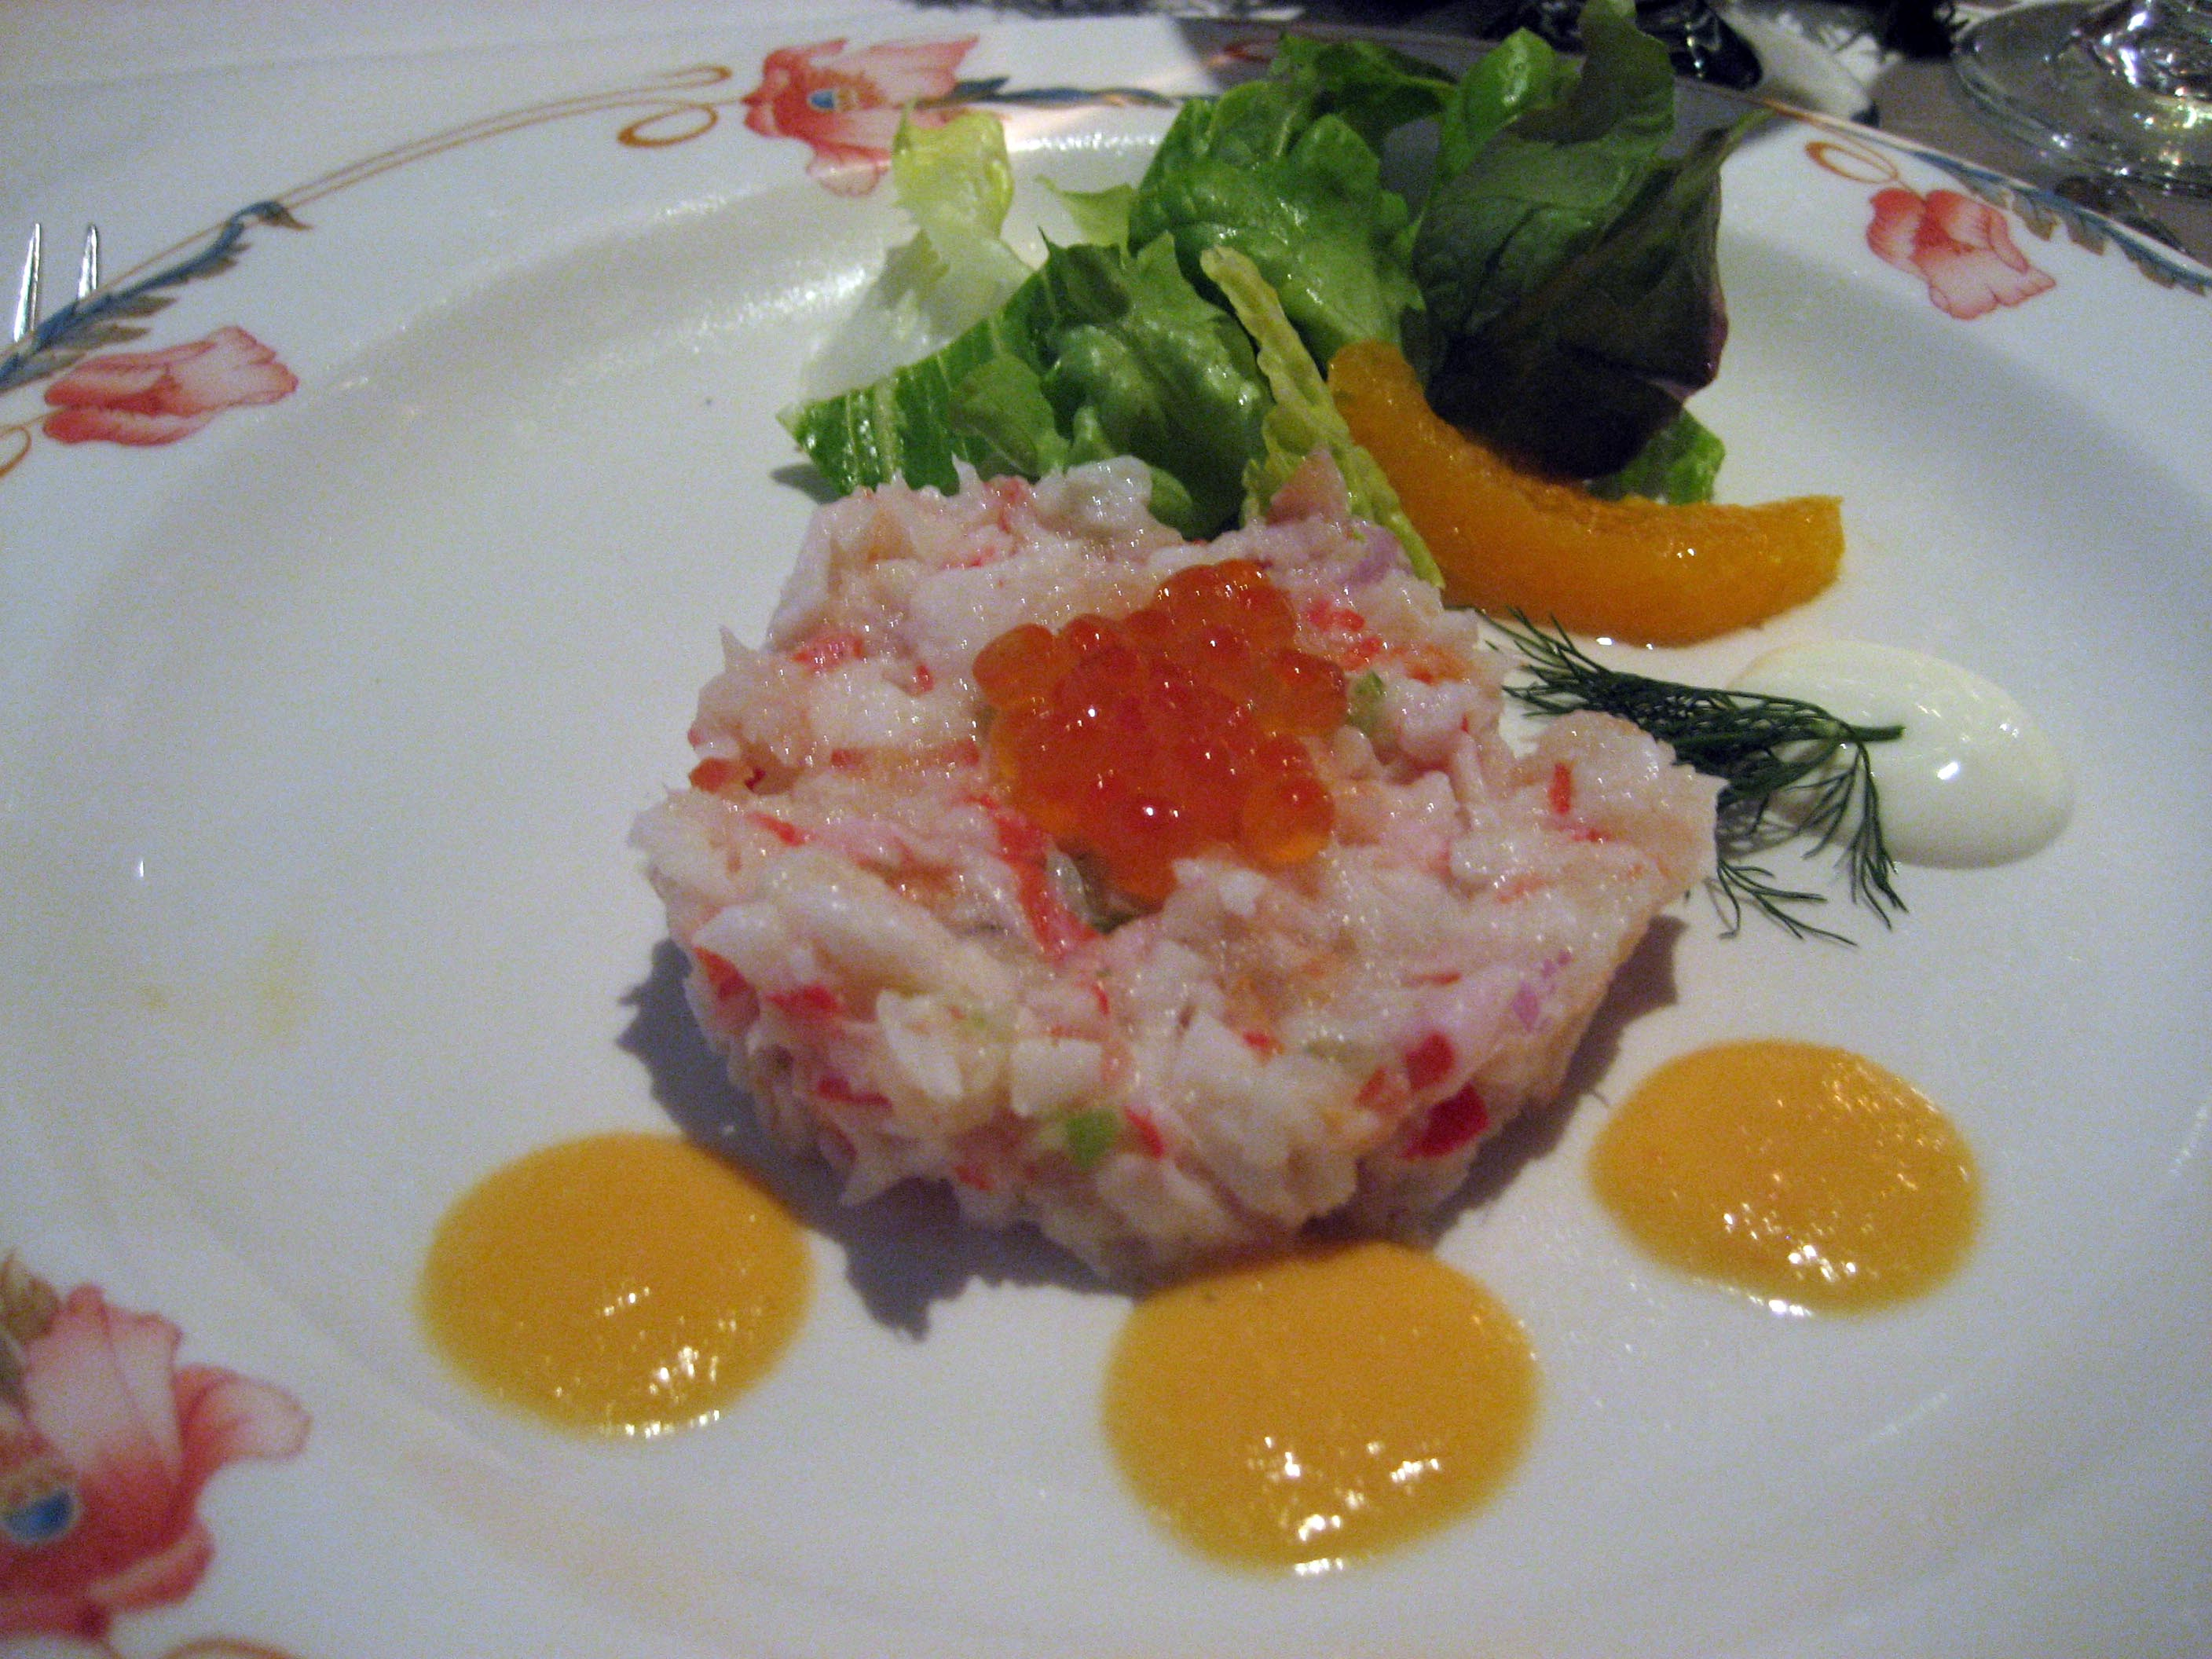 Kingcrab and Prawn Salad with Papaya